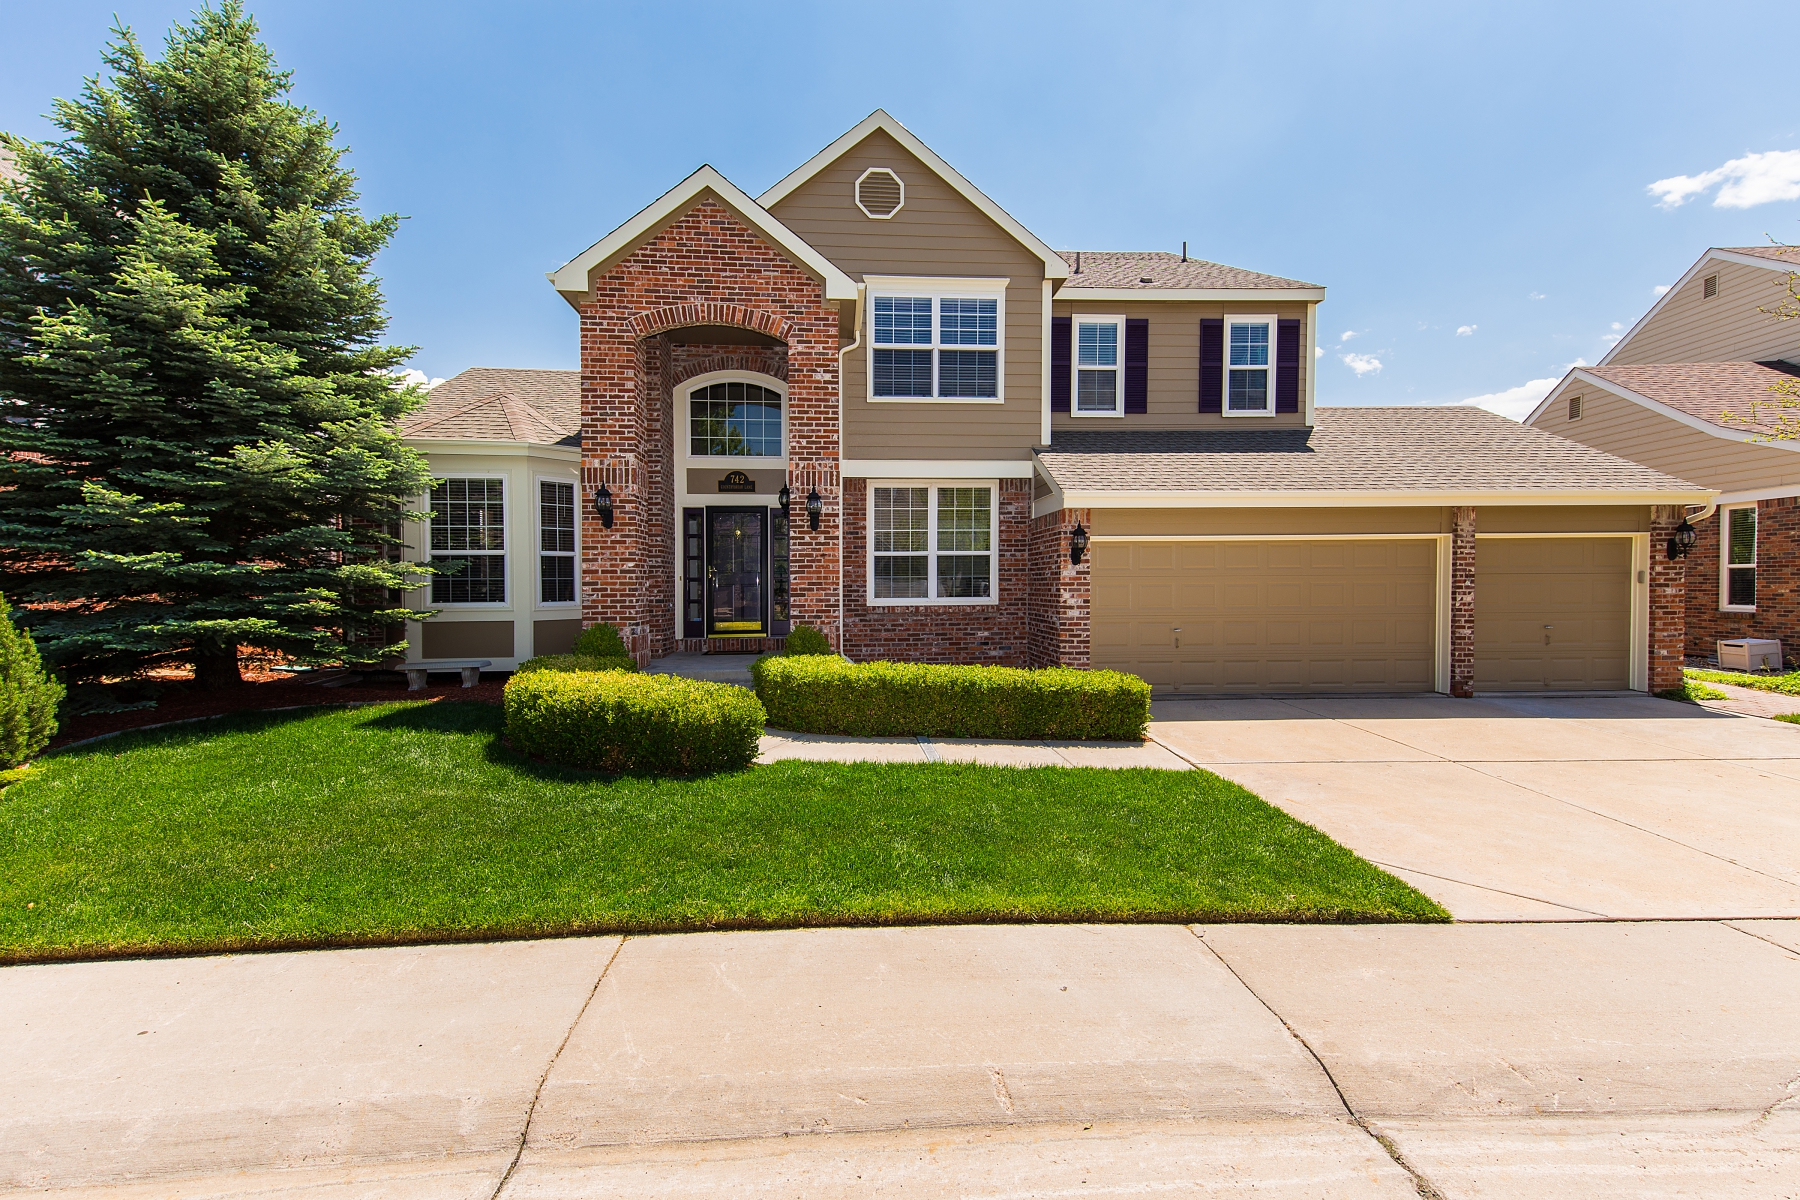 Single Family Home for Sale at An exceptional home perfectly maintained in Weatherstone 742 Countrybriar Ln Highlands Ranch, Colorado 80129 United States